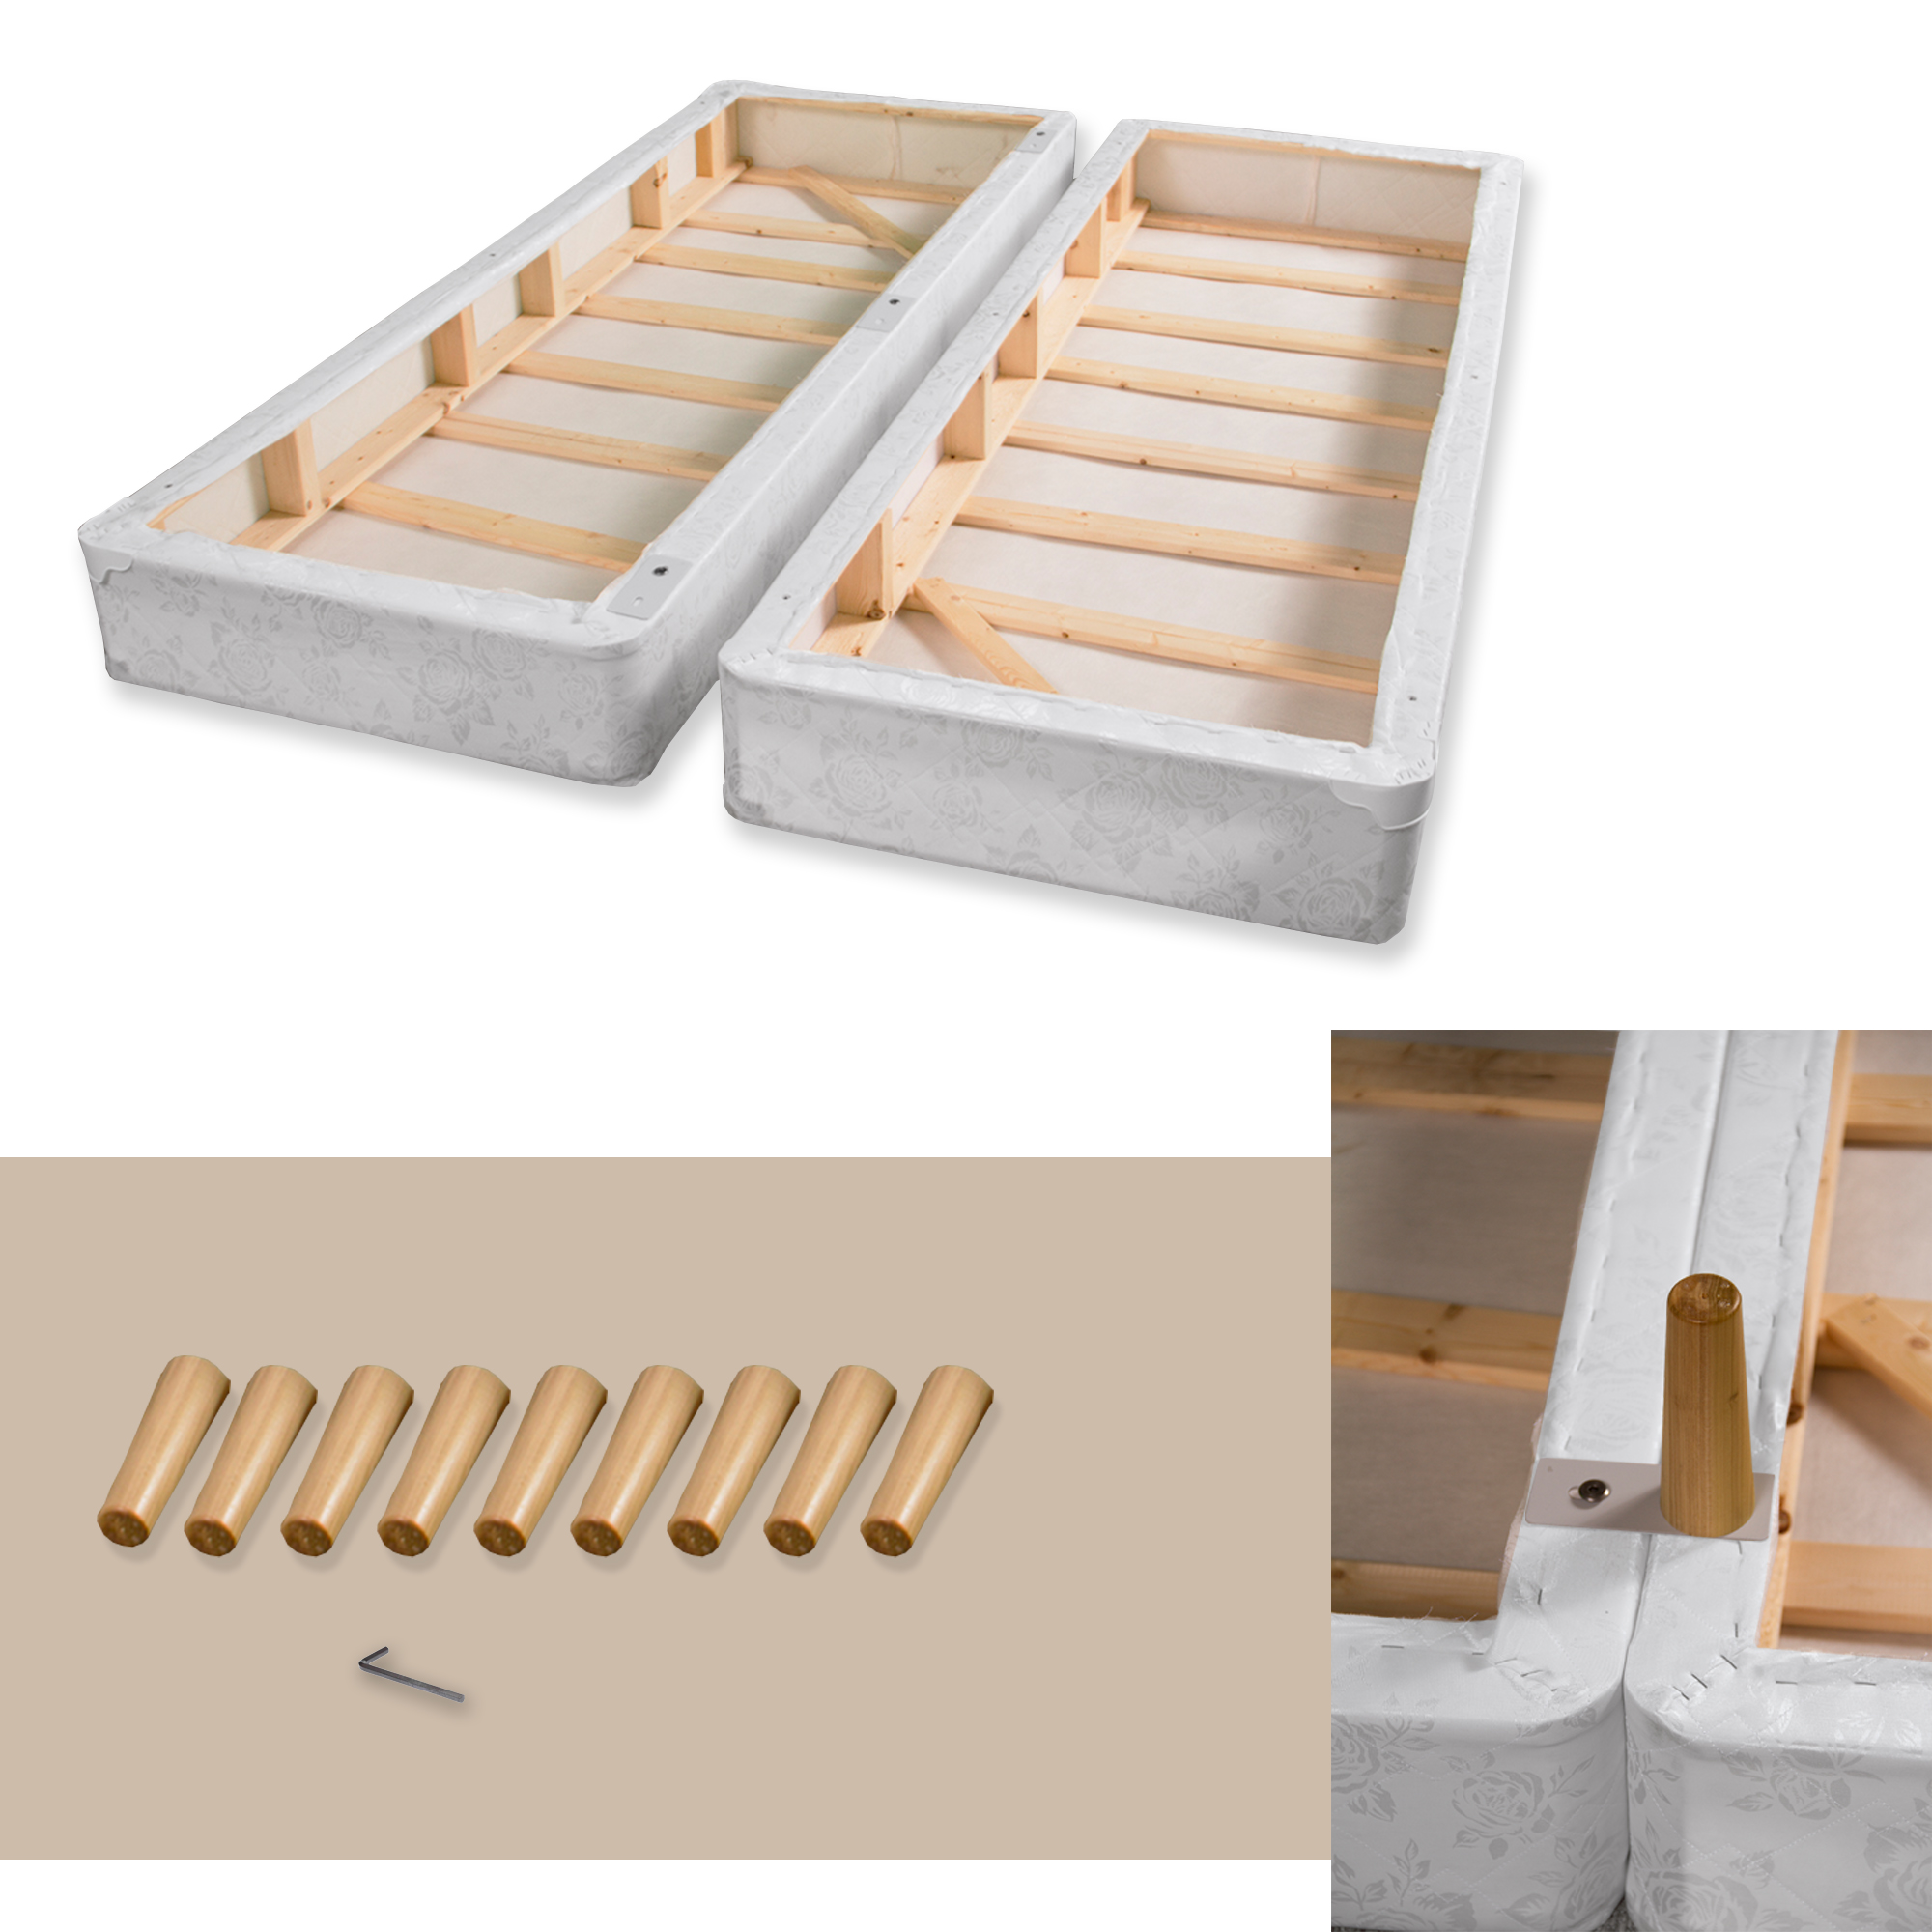 Full XL Greaton Firm 4-Inch Split Low Profile Wood Fully Assembled Traditional Box Spring//Foundation for Mattress Beige